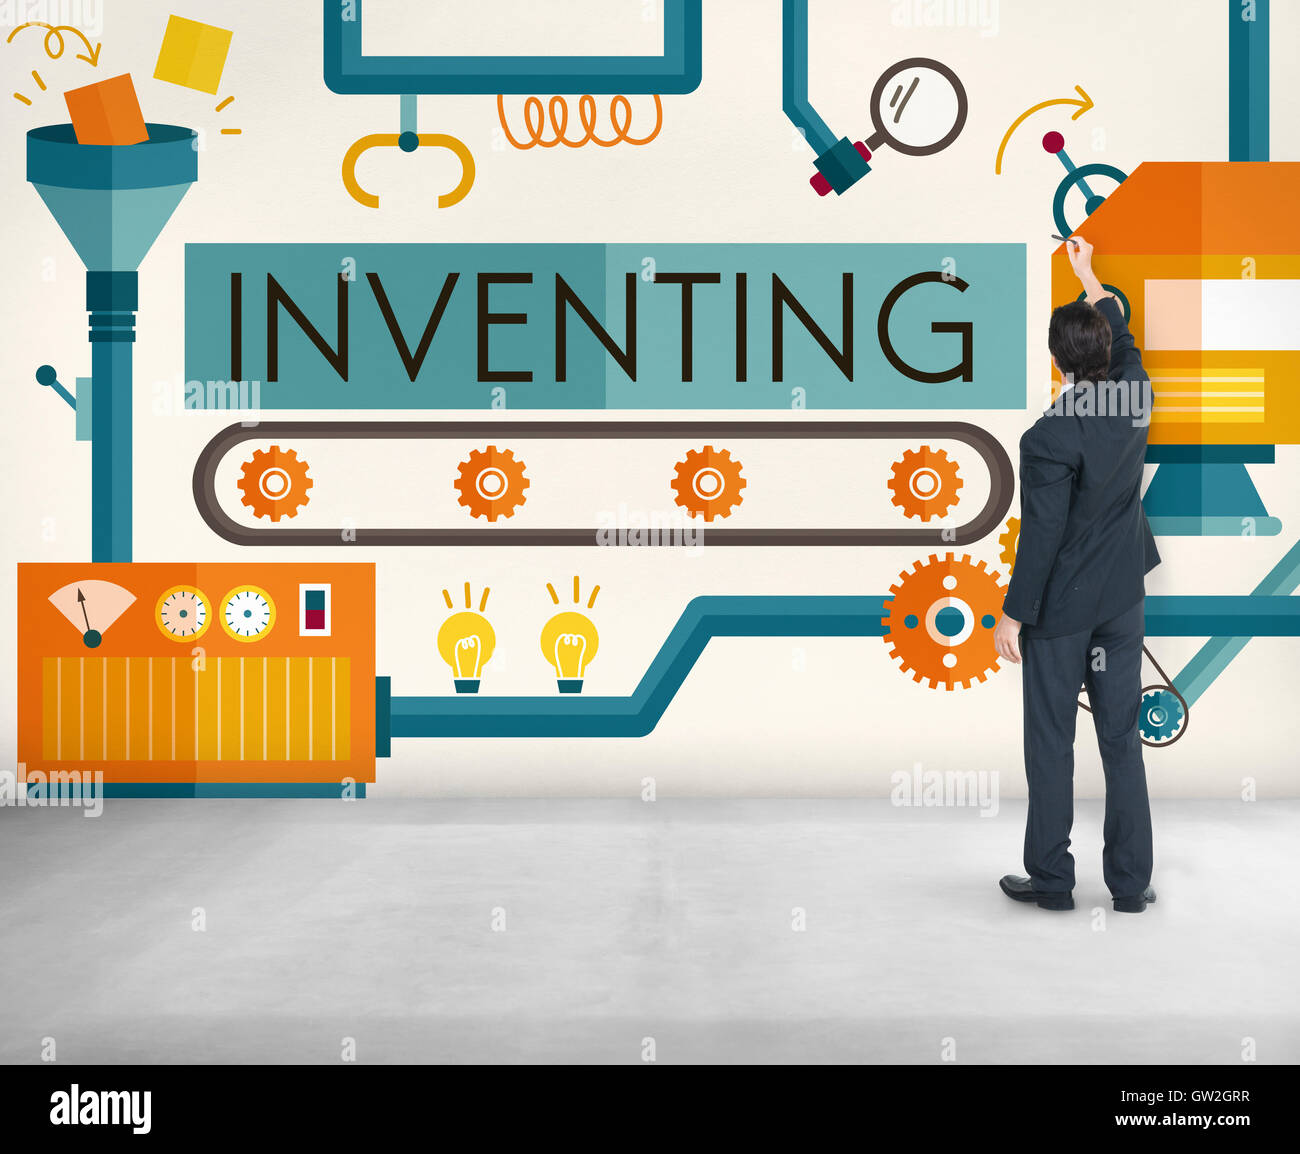 Inventing Compose Discover Production Concept - Stock Image